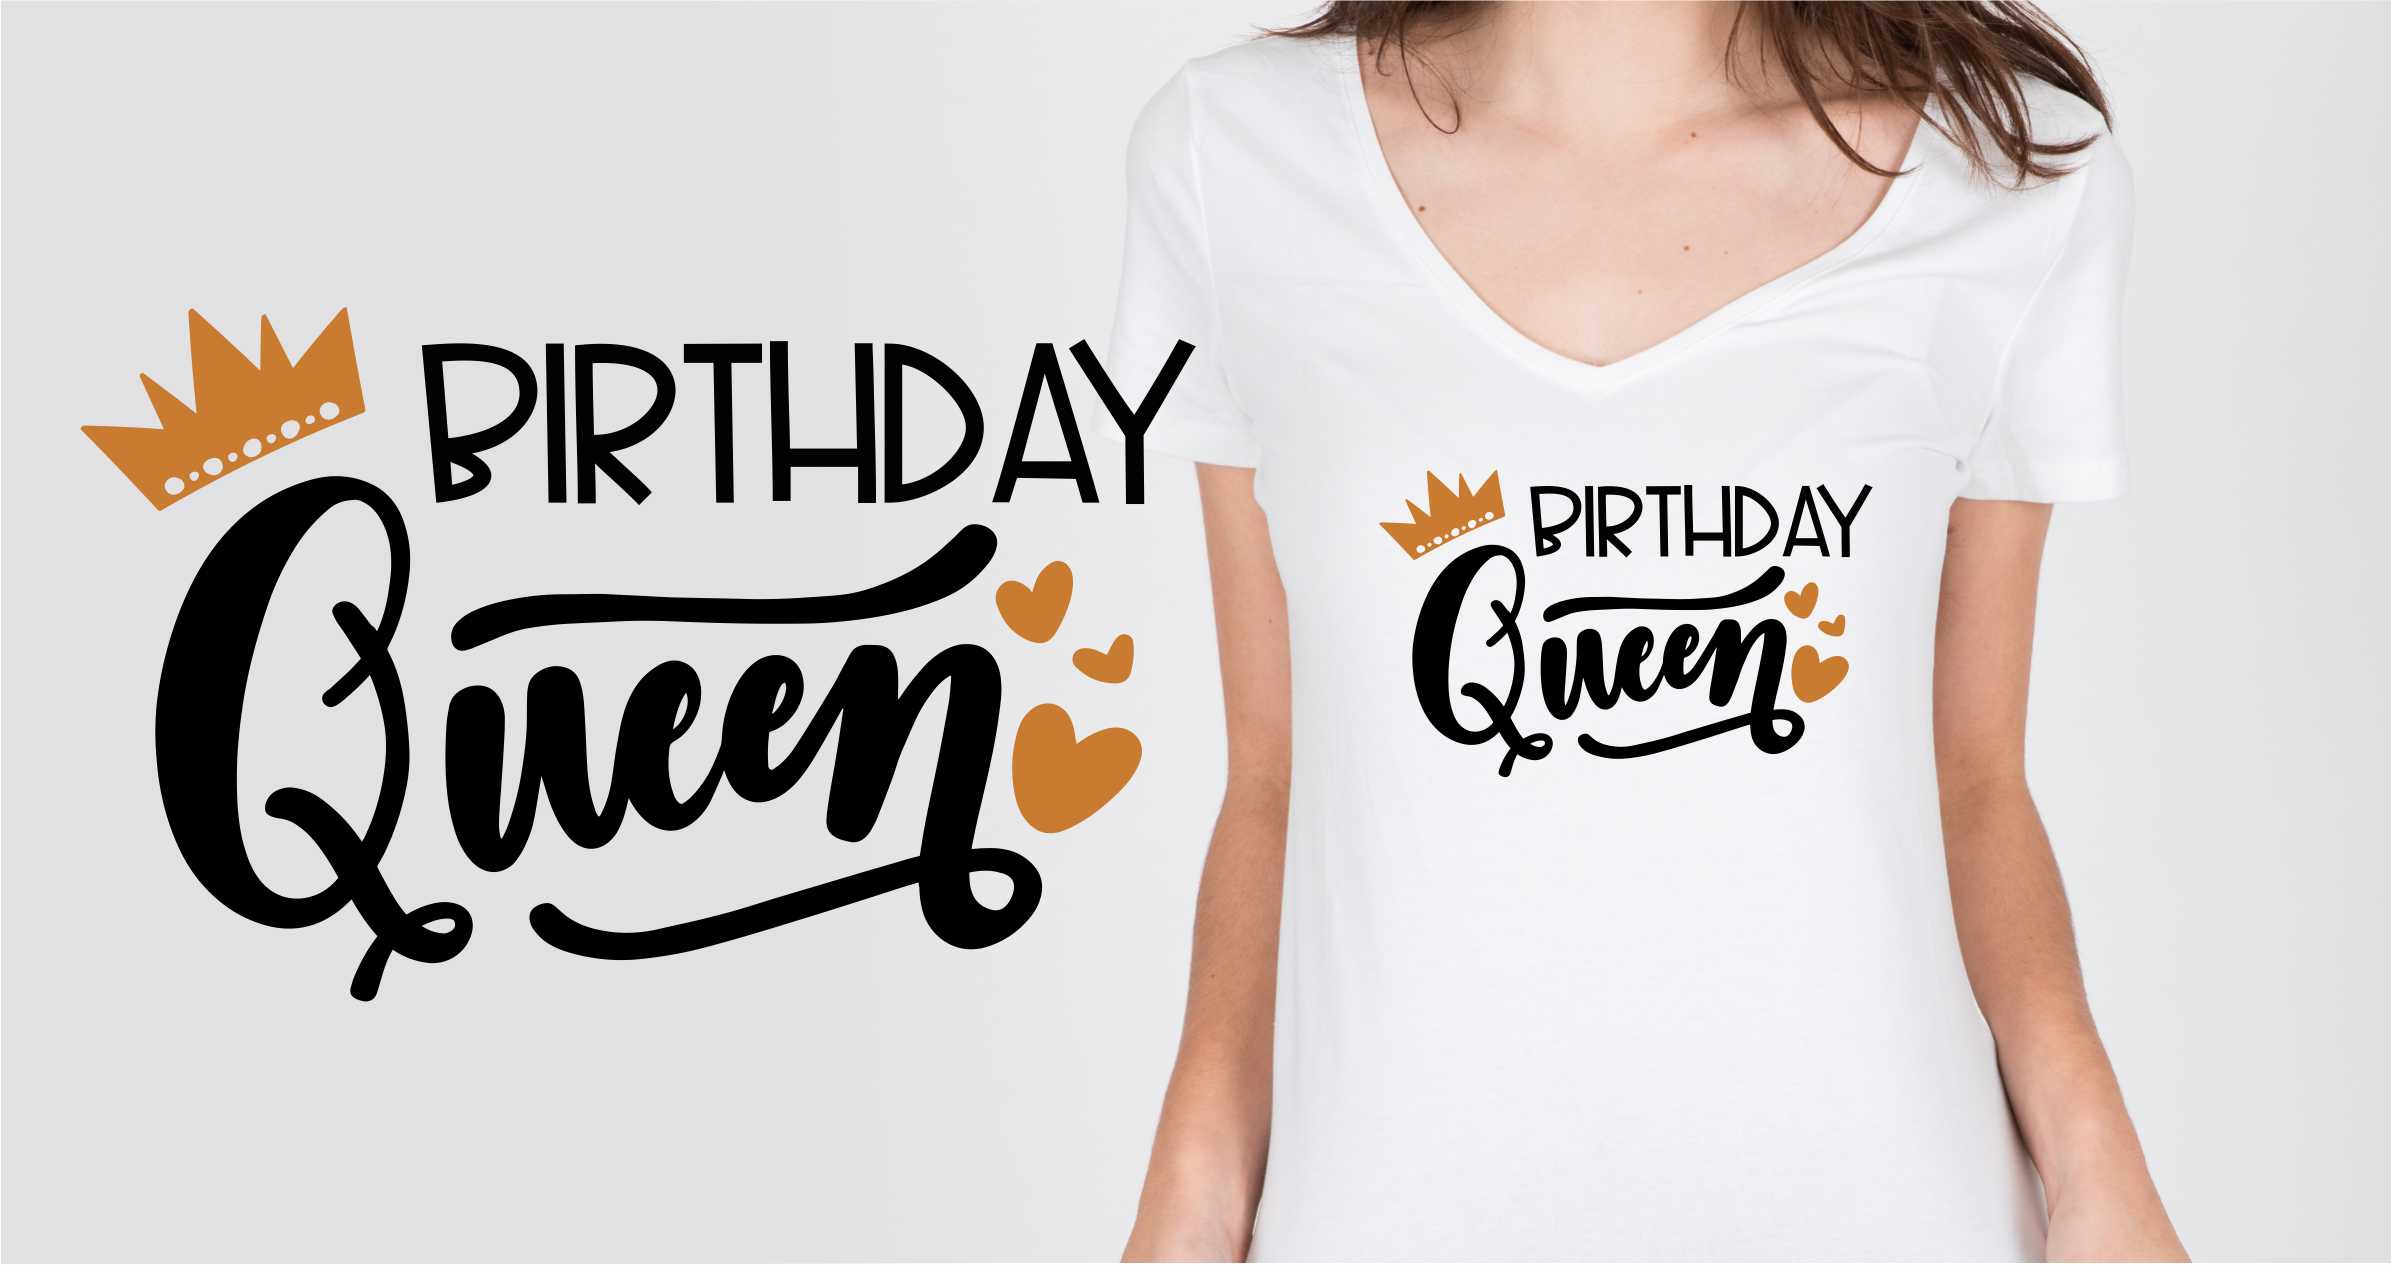 birthday-queen-shirt-pretoria